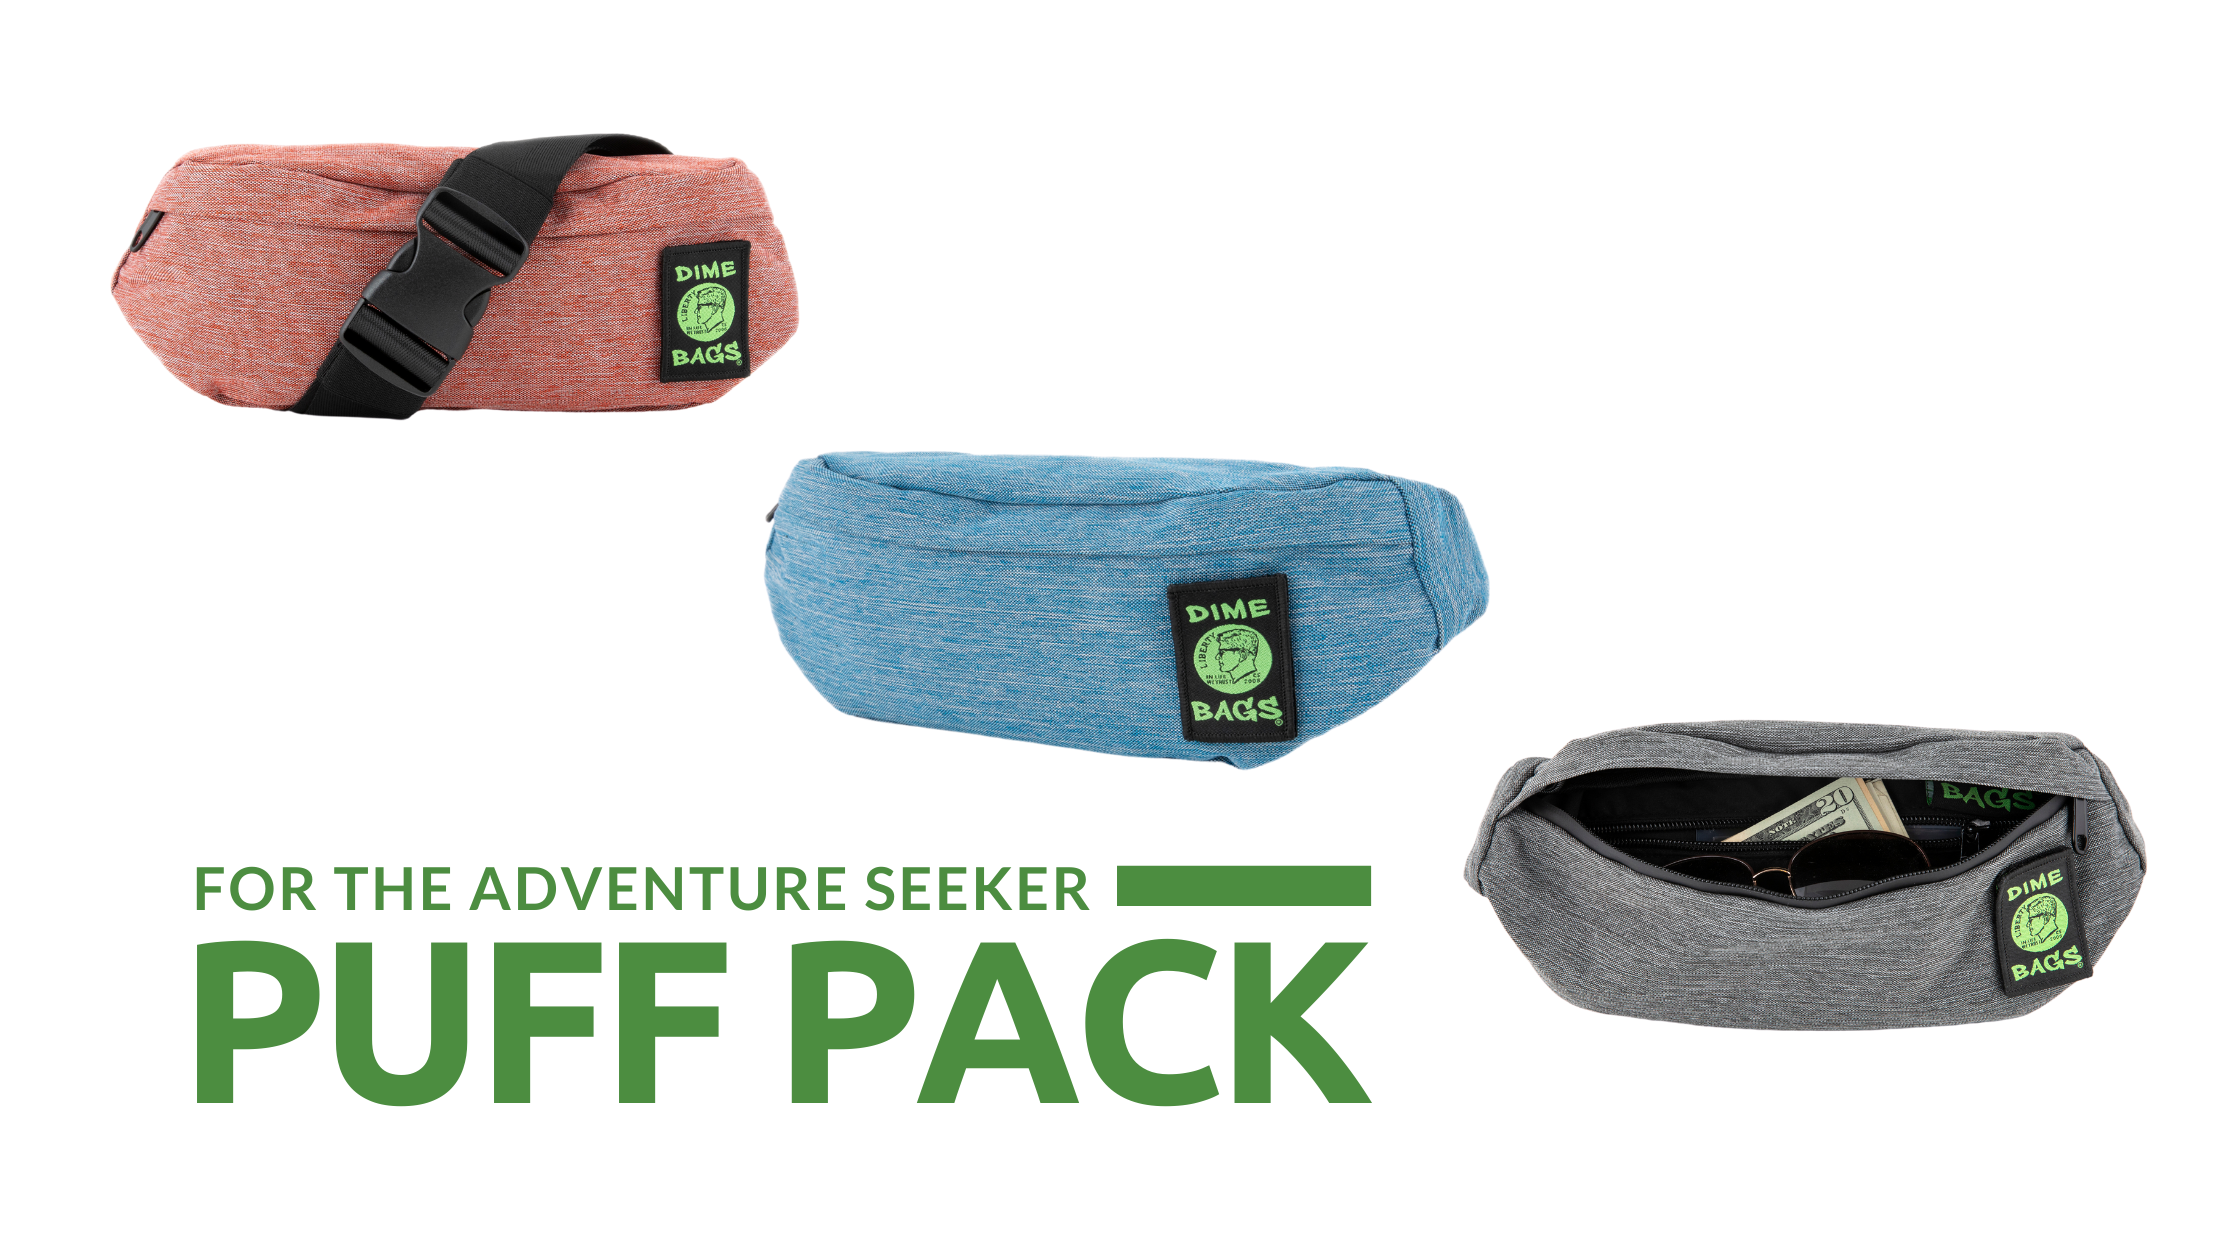 Introducing the Puff Pack |Fanny Pack |Sports Pack